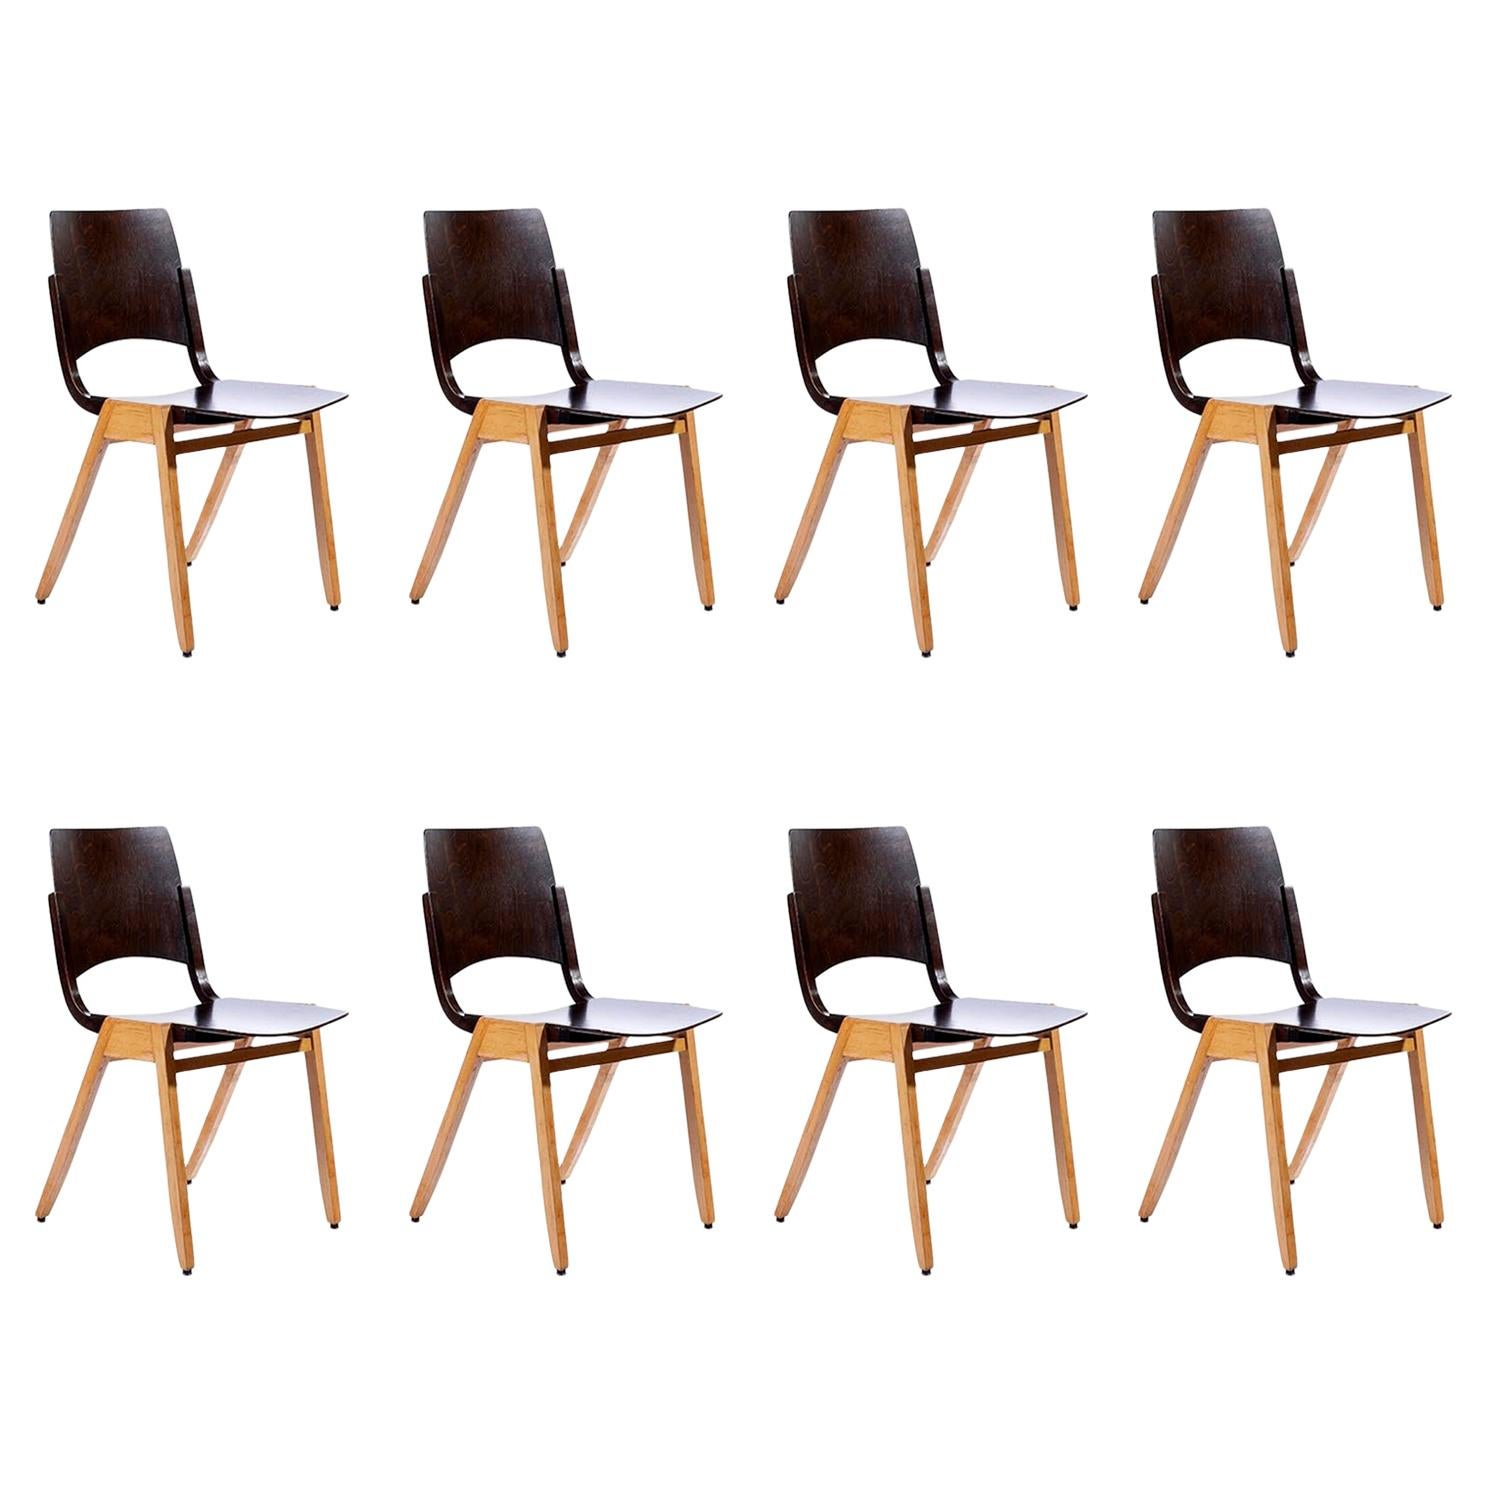 Roland Rainer, Set of Eight Stacking Chairs P7, Bicolored Beech, Austria, 1952